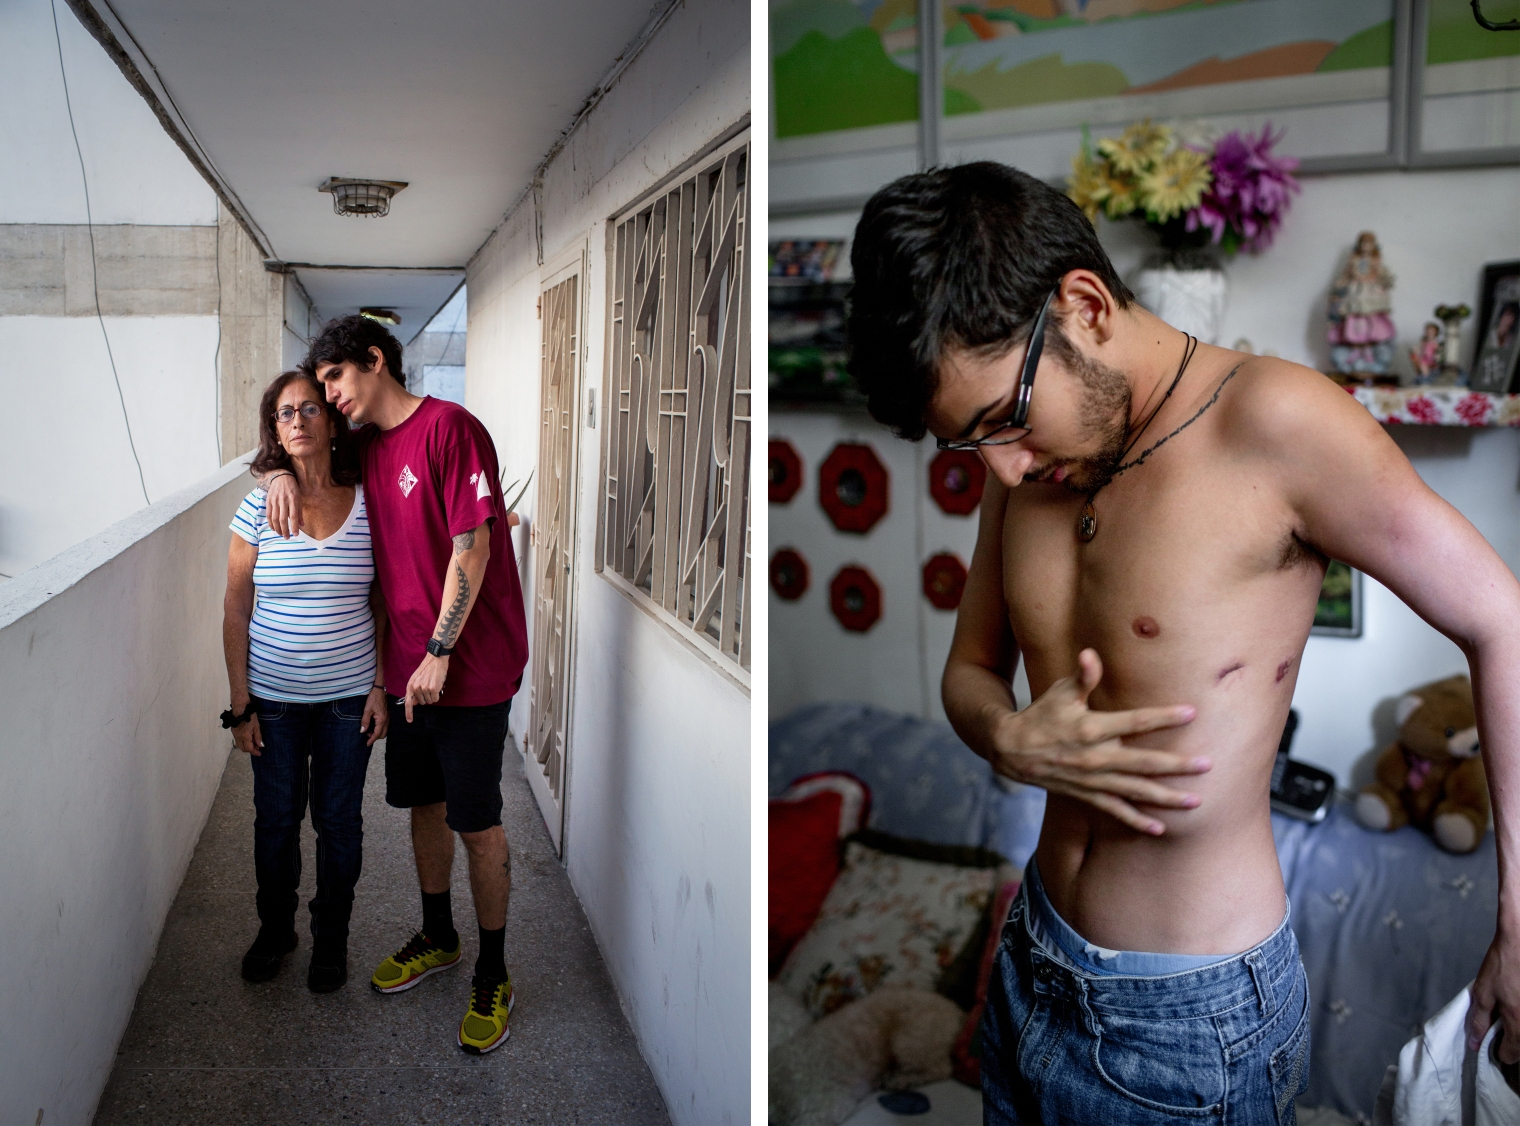 "MOTHER/SON: August 1, 2017. Caracas. (El Valle). Juan Carlos Ramos (Koji), 34, poses for a portrait with his mother, Raquel Velasquez, 66, in their building in El Valle. The barrio of El Valle, once a stronghold of Chavismo, has been the site of violent confrontations between protesters, police, and pro-government gangs in recent months, resulting in several deaths within blocks of his home. A DJ and clothing designer, he say the parties he used to play at have stopped, and because of the inflation and disruptions from the protests he hasn't been able to fill orders for his clothing brand. I ask if he thinks about leaving the country? ""Every day,"" he responds, but he doesn't want to leave his family. Velasquez was once a leftist activist, but now she is an organizer for Primer Justicia, an opposition party. When asked what issues are most important to her she responds immediately, ""The future. A future for my children. A country where my whole family doesn't have to immigrate and we can be together. Our table used to be full at holidays. Now we're spread out all over the world."" BODY: August 2, 2017. Caracas. Pedro Yammine, 22, shows puncture wounds in his side at his neighbors apartment, from where he had to have tubes in his lungs after being run over by a tank during the protests in May. He had 13 fractures all together, his lungs were punctured and filled with fluid, he had massive contusions. But he lived and today is recuperating well under the watchful eye of his terrified mother."